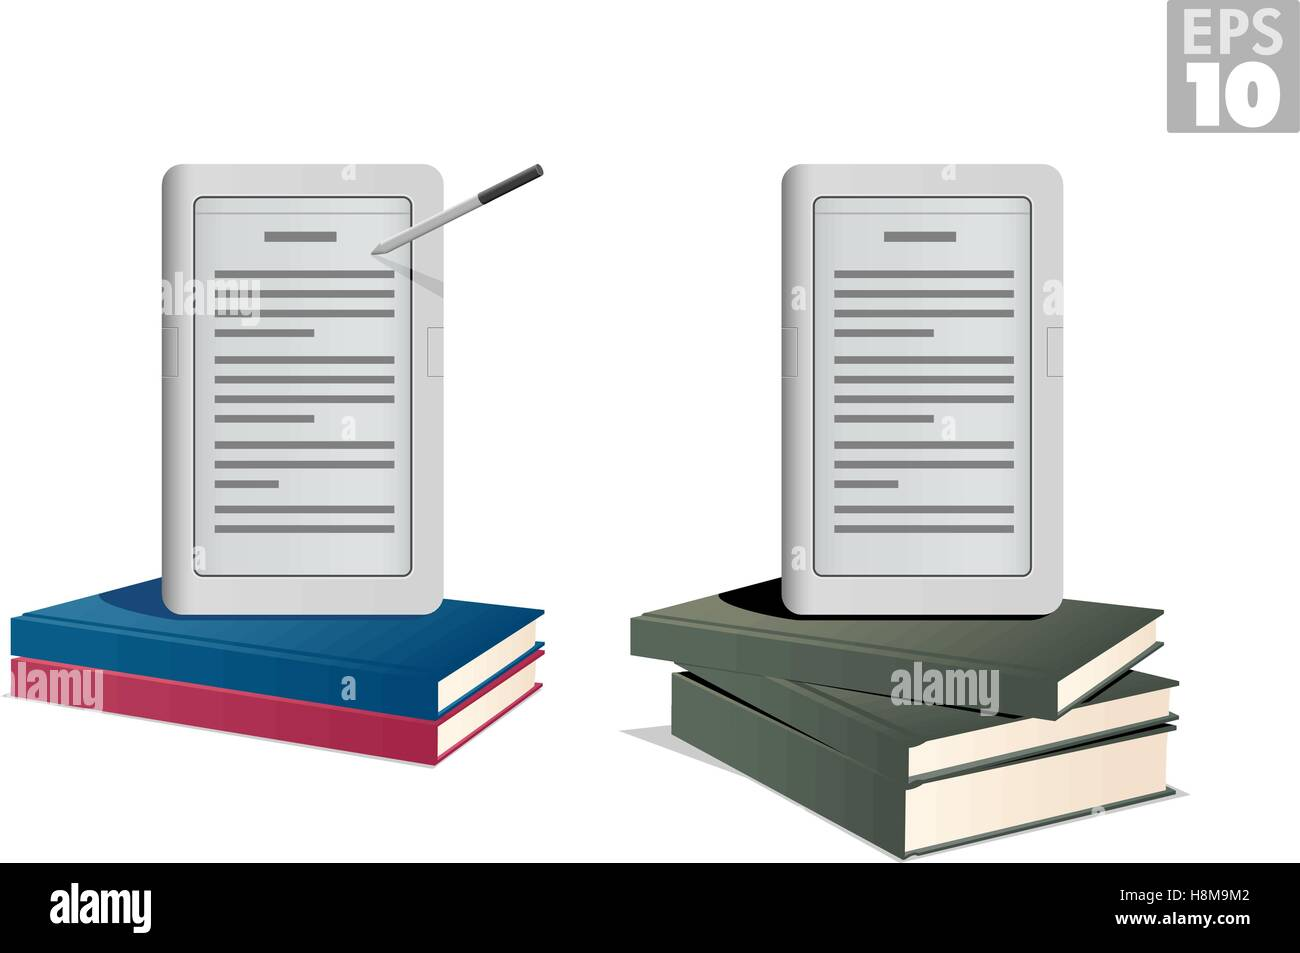 Ebook reader on a stack of hardcover books - Stock Image